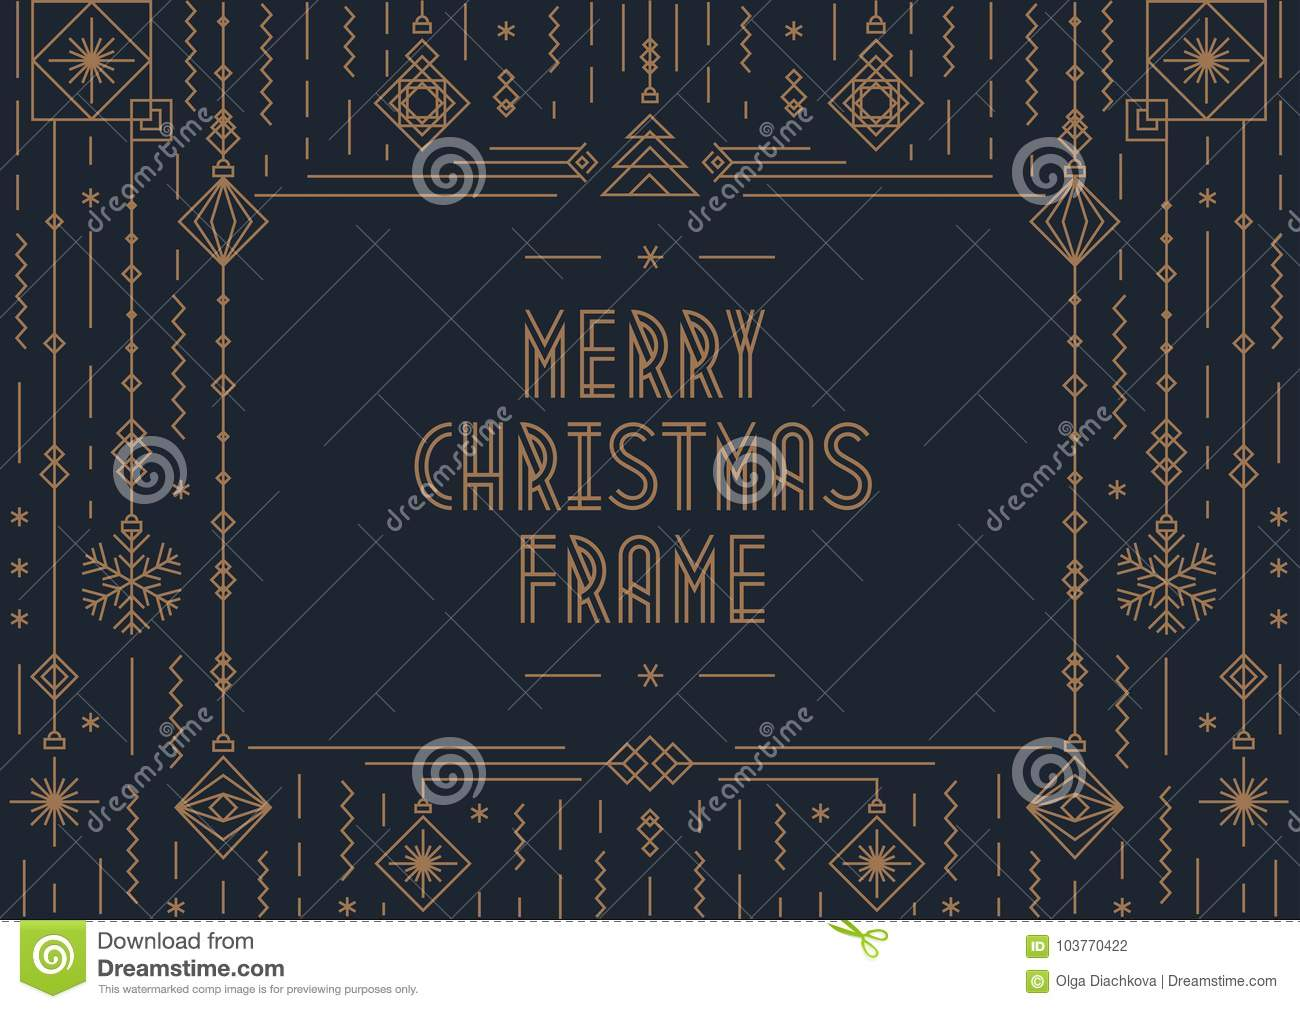 Merry Christmas Card Template With New Year Toy Gold Art Deco Style